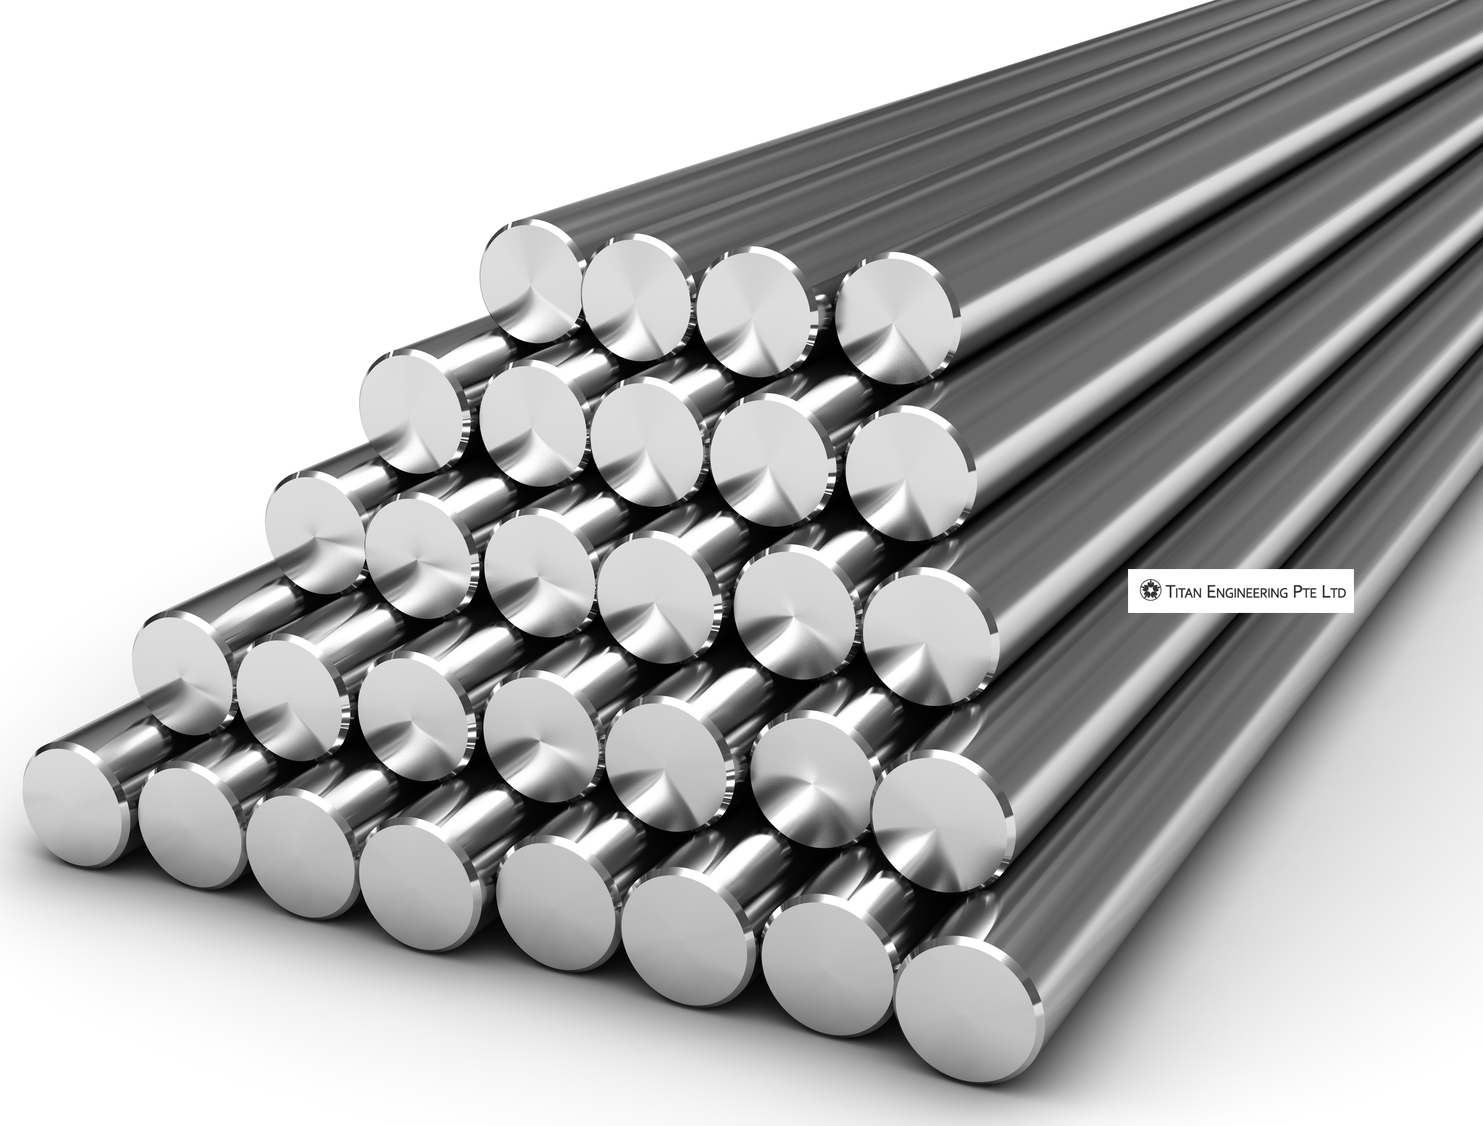 Titanium Metal Bar Rod stockist